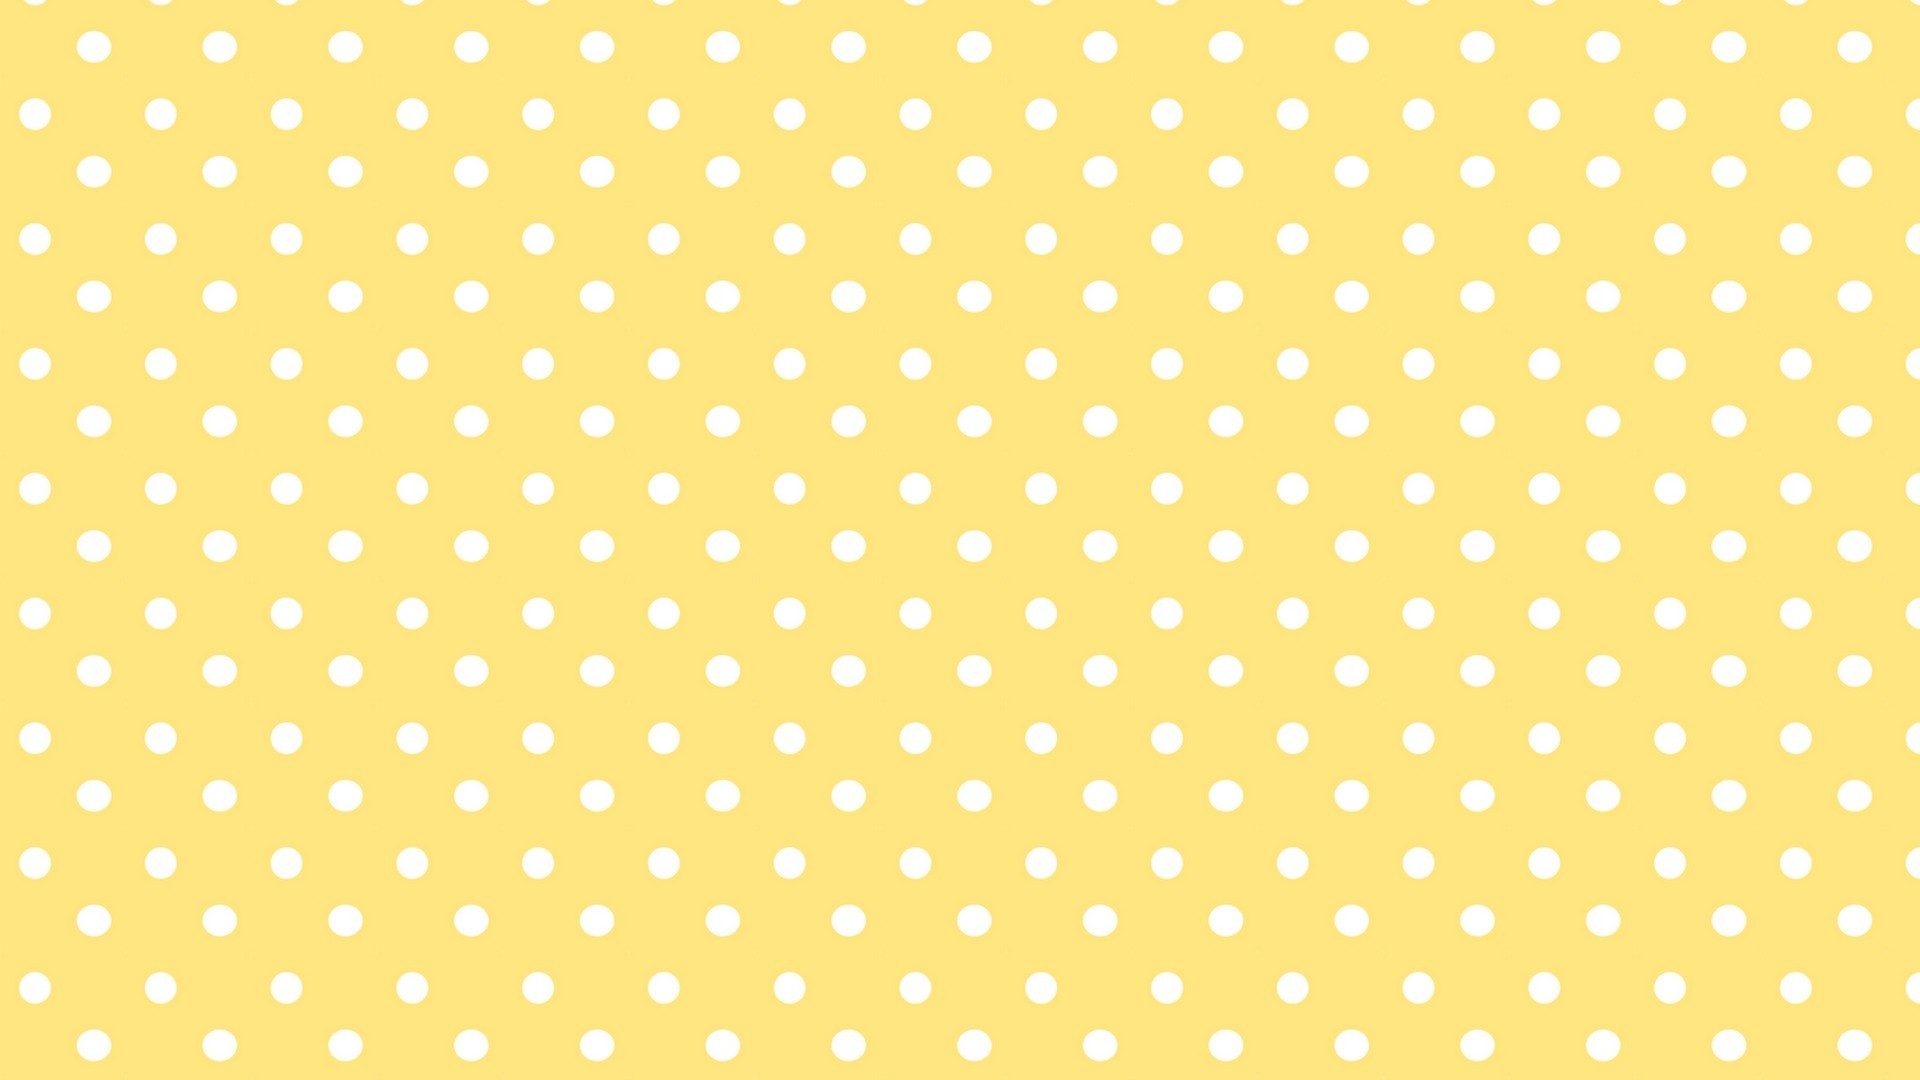 Cute Yellow Free Wallpaper and Background